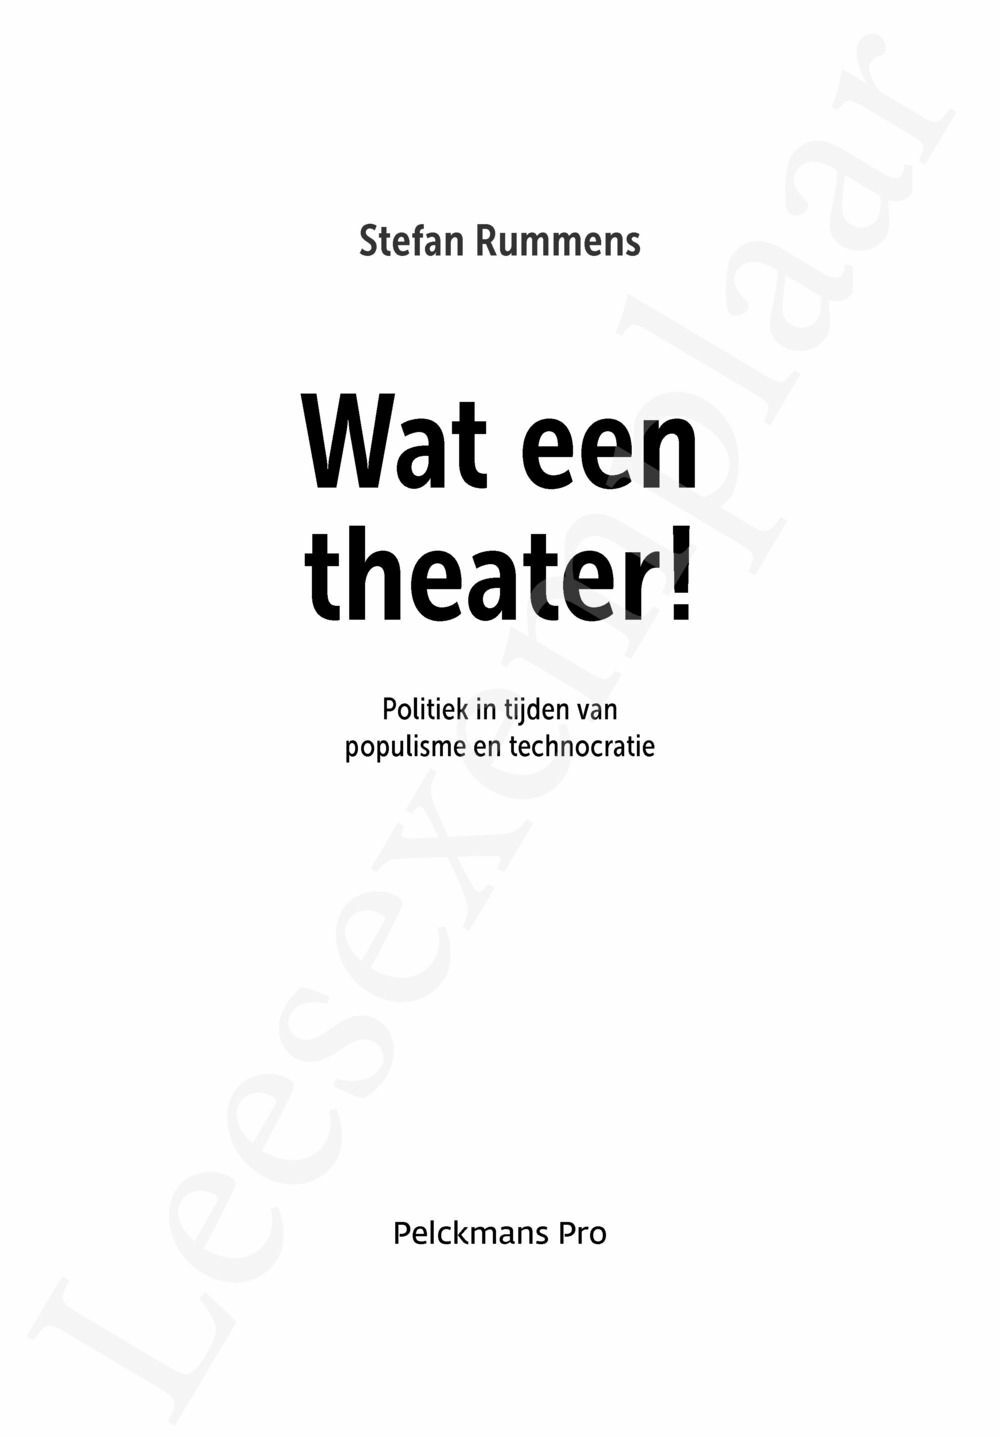 Preview: Wat een theater!